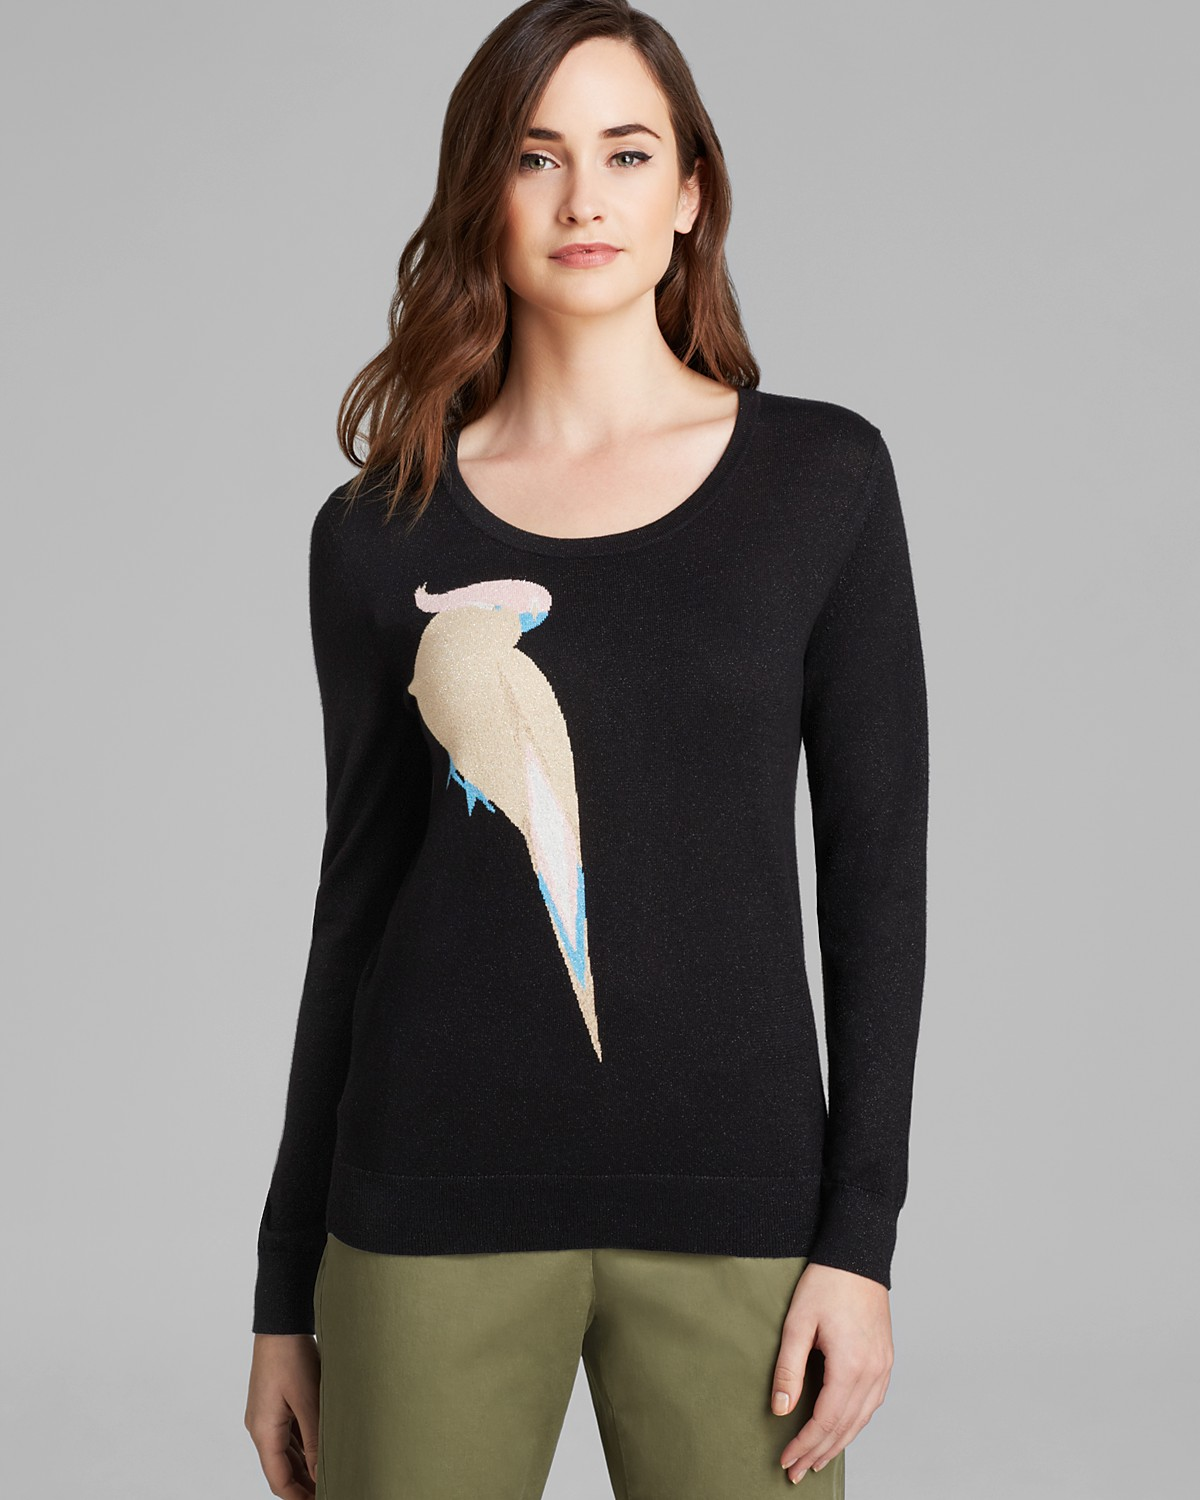 MARC BY MARC JACOBS Sweater - Betty Birdie | Bloomingdale's